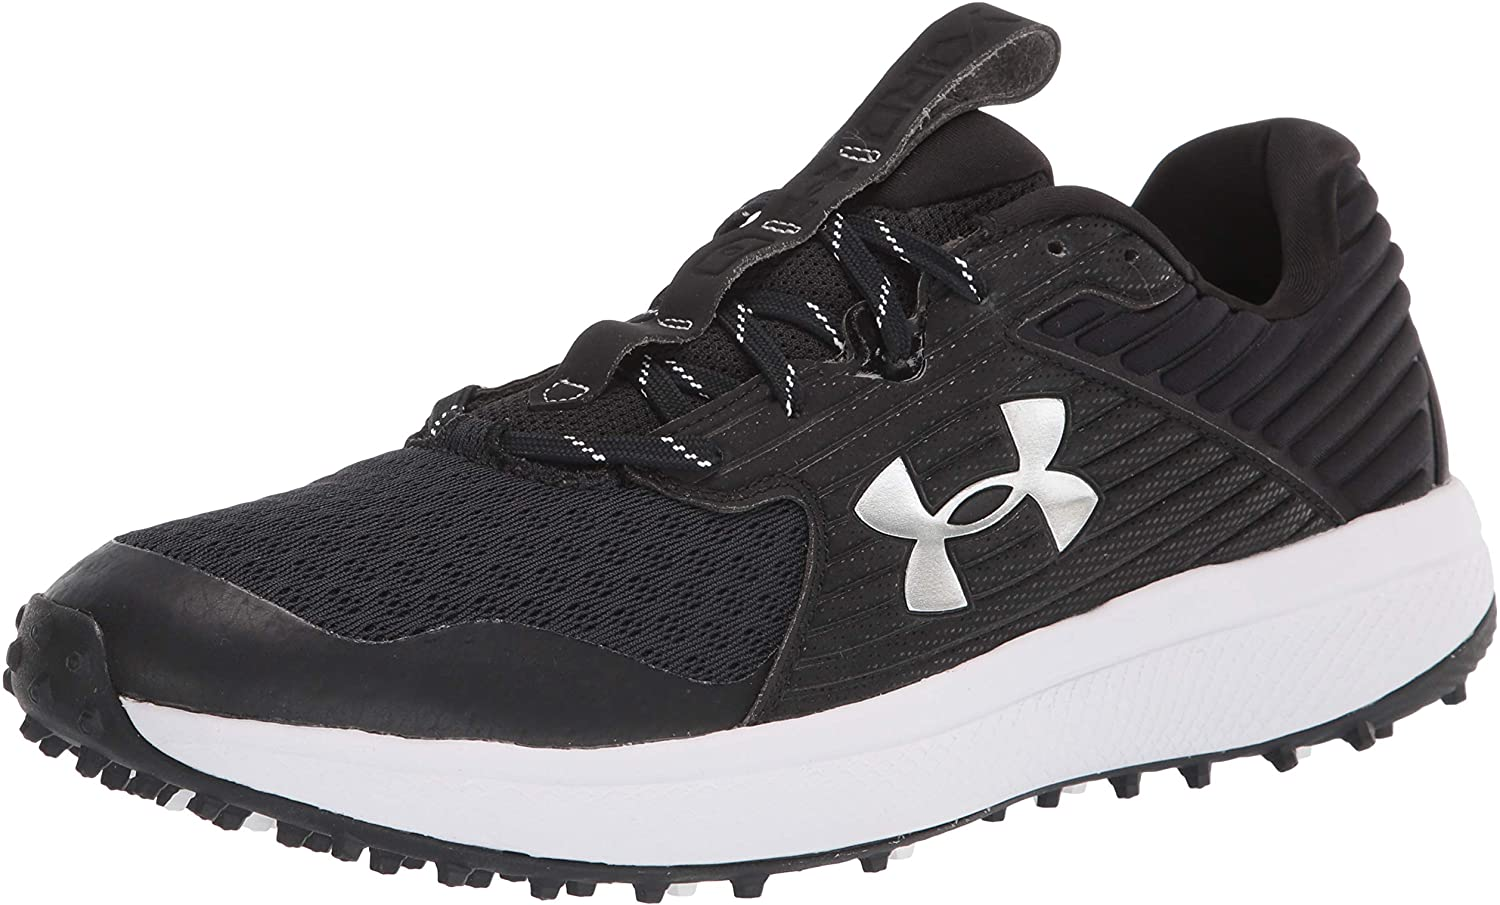 Under Armour Max 77% OFF Men's Yard Shoe Baseball OFFer Turf